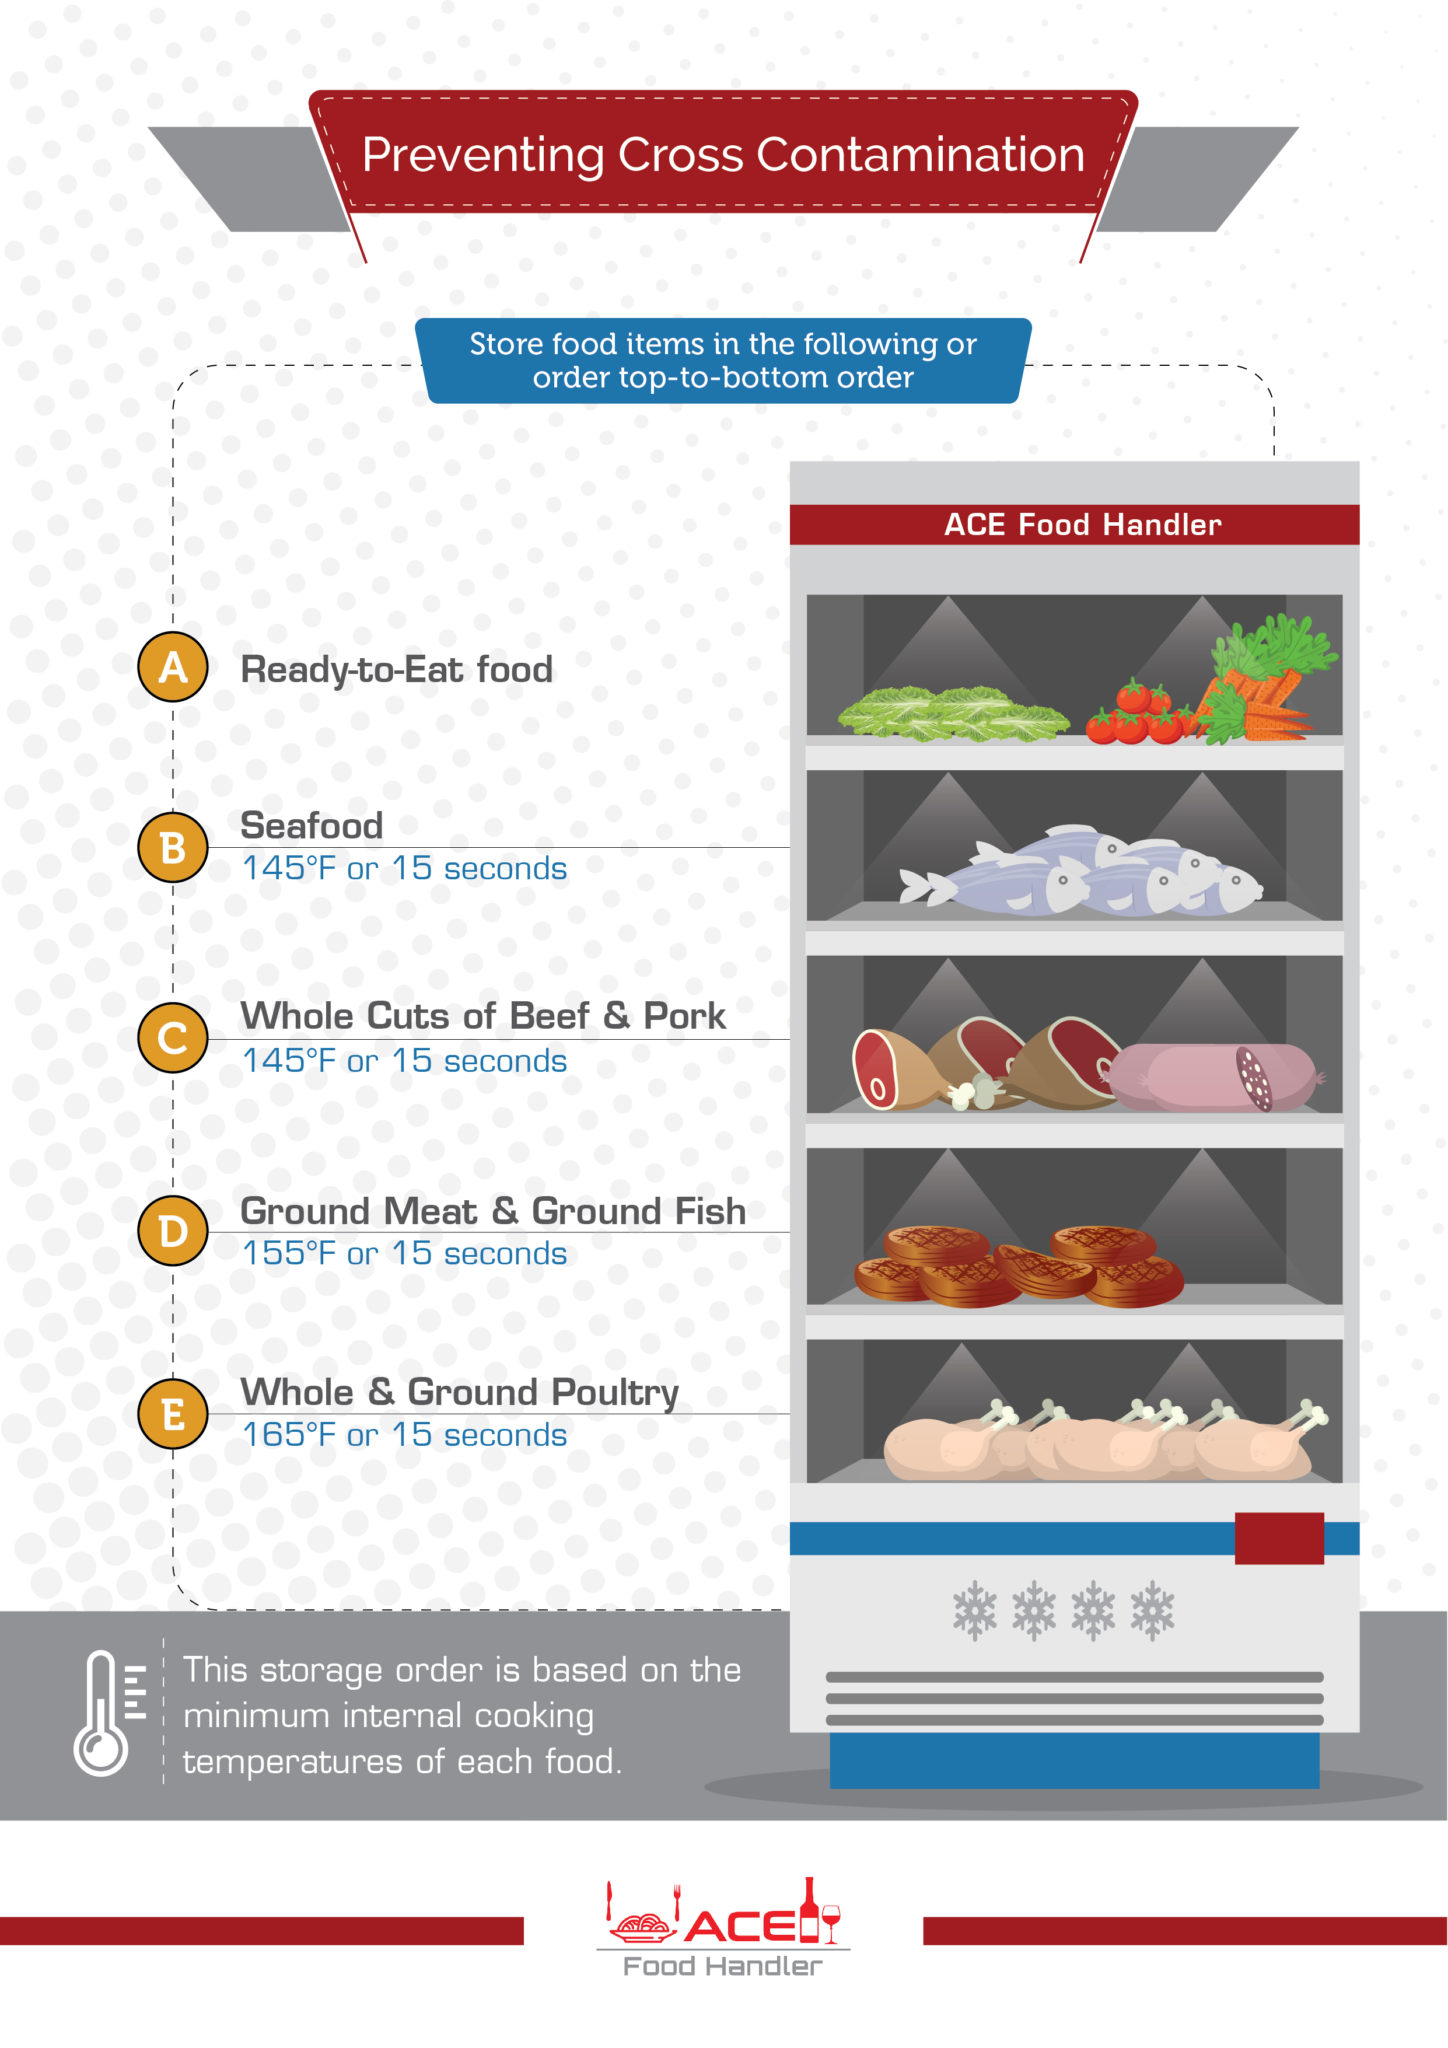 meat and poultry products hazards and control guide